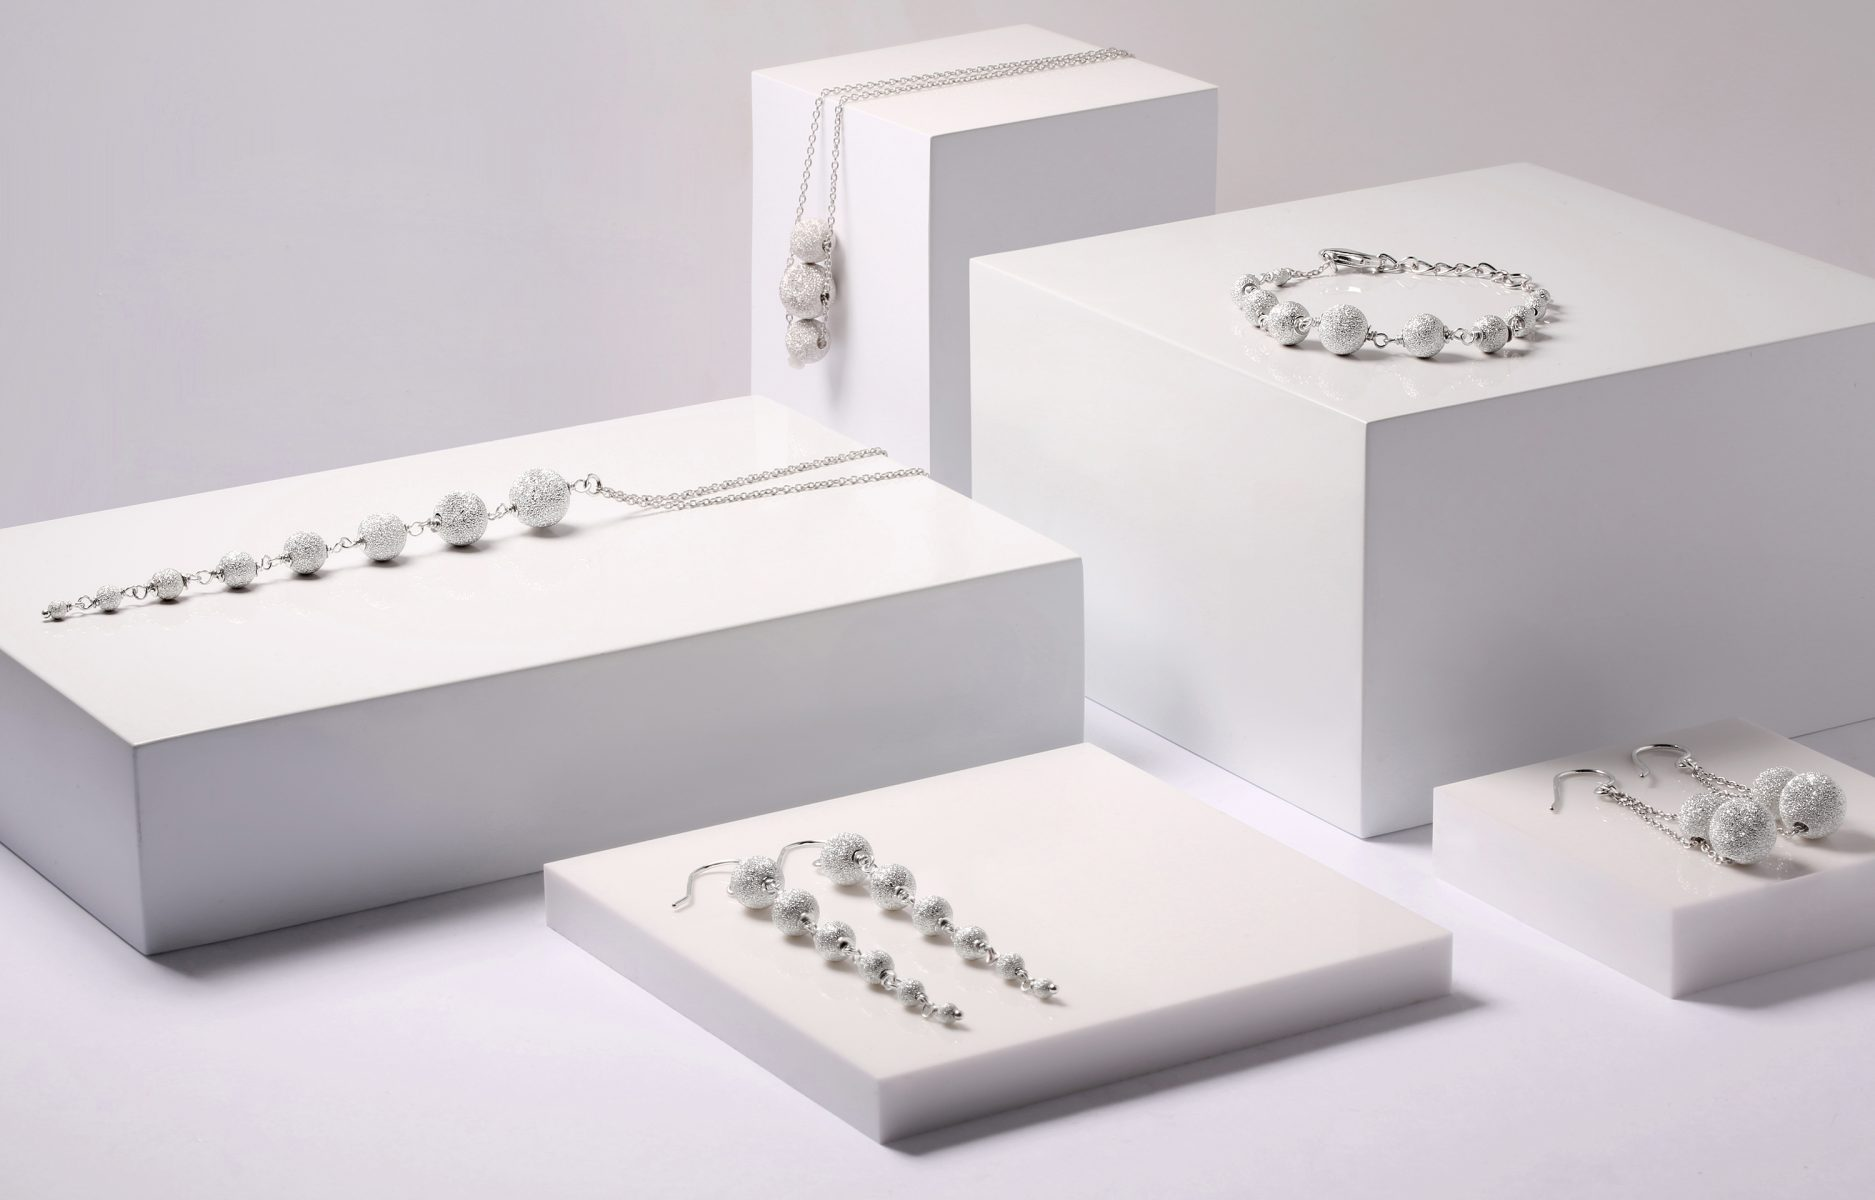 Gems TV special auction for new silver jewellery fashion collection Lola